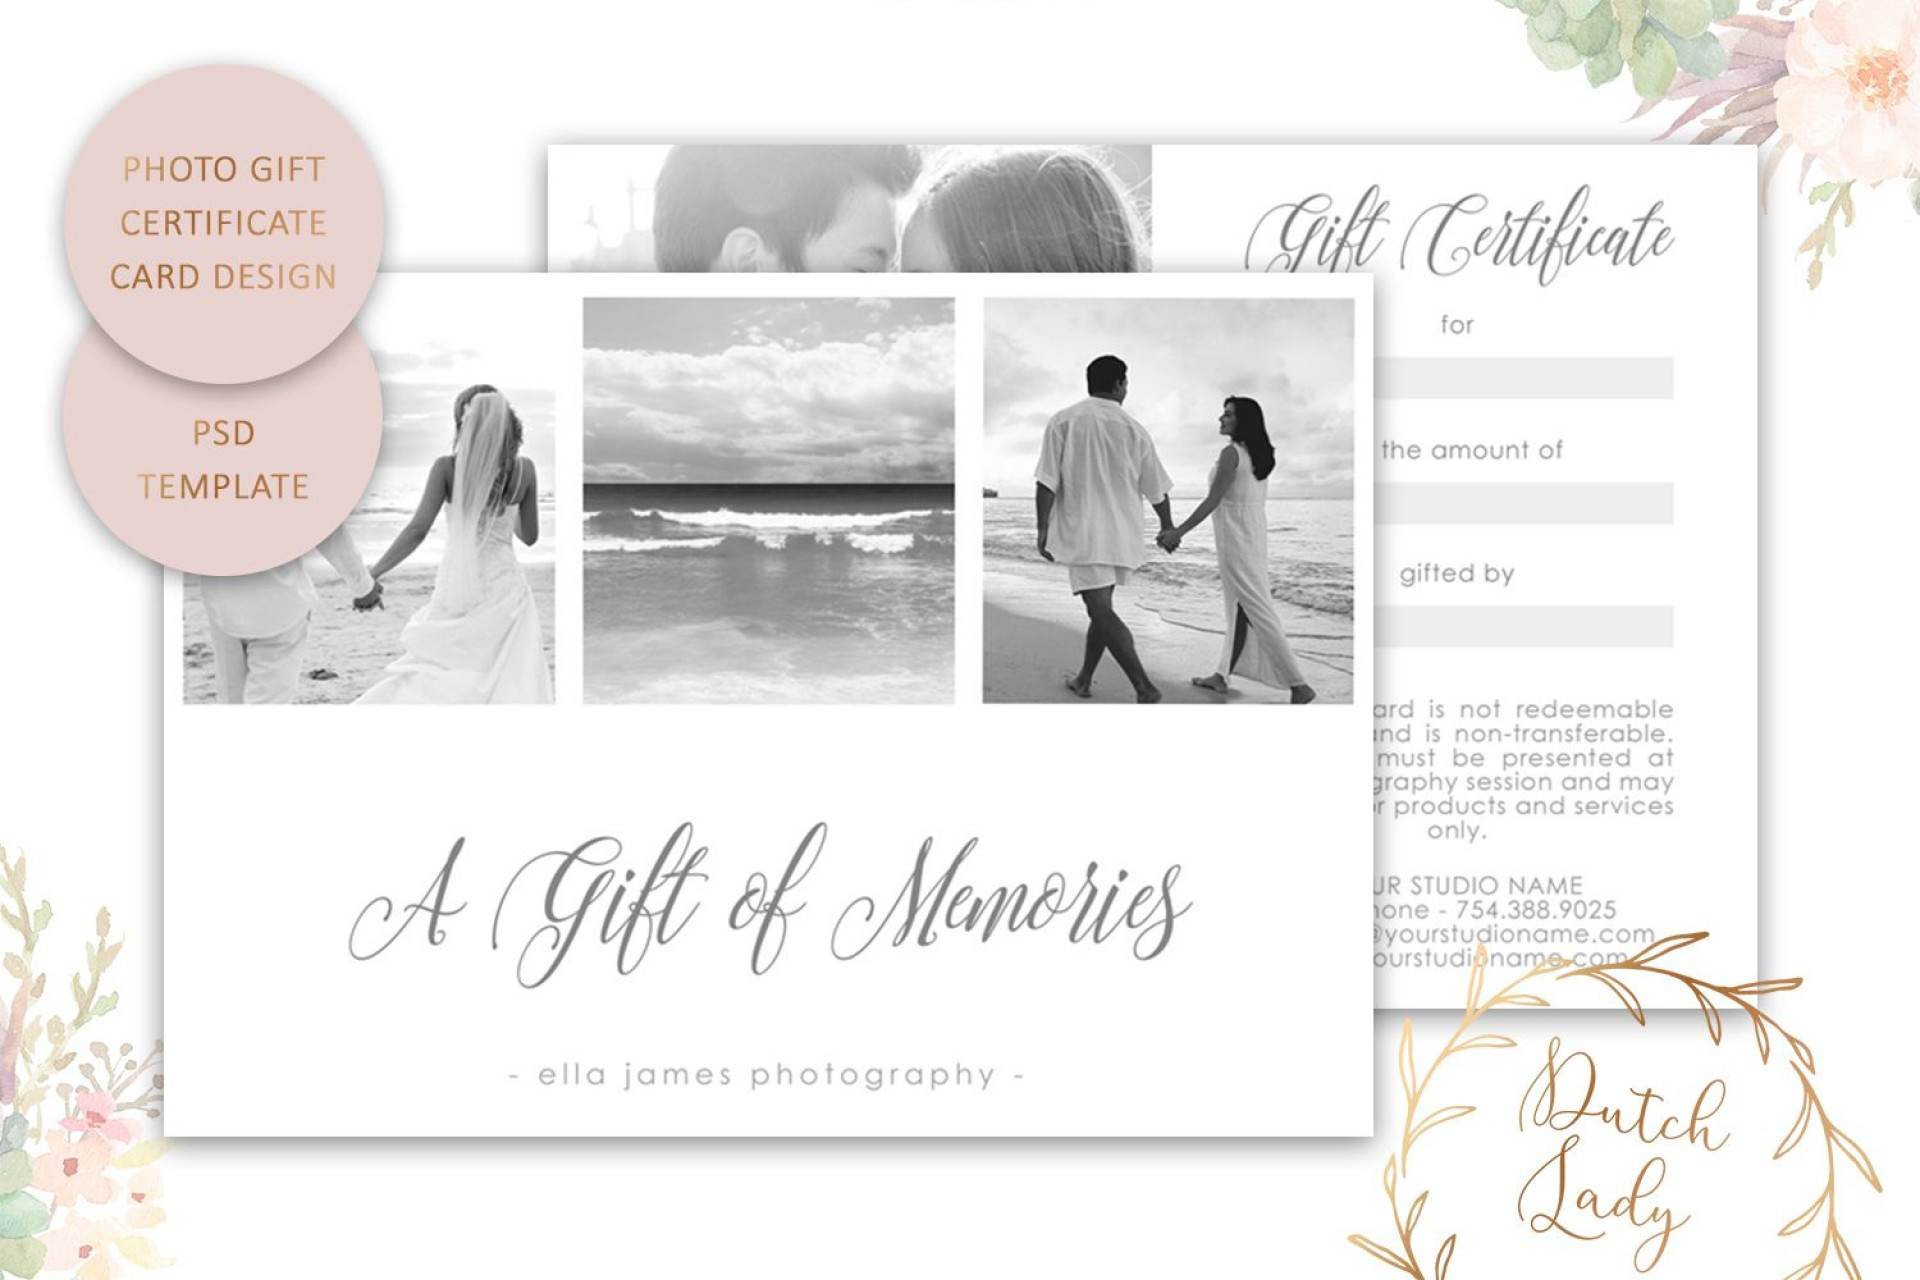 008 Remarkable Photography Session Gift Certificate Template Highest Quality  Photo Free1920